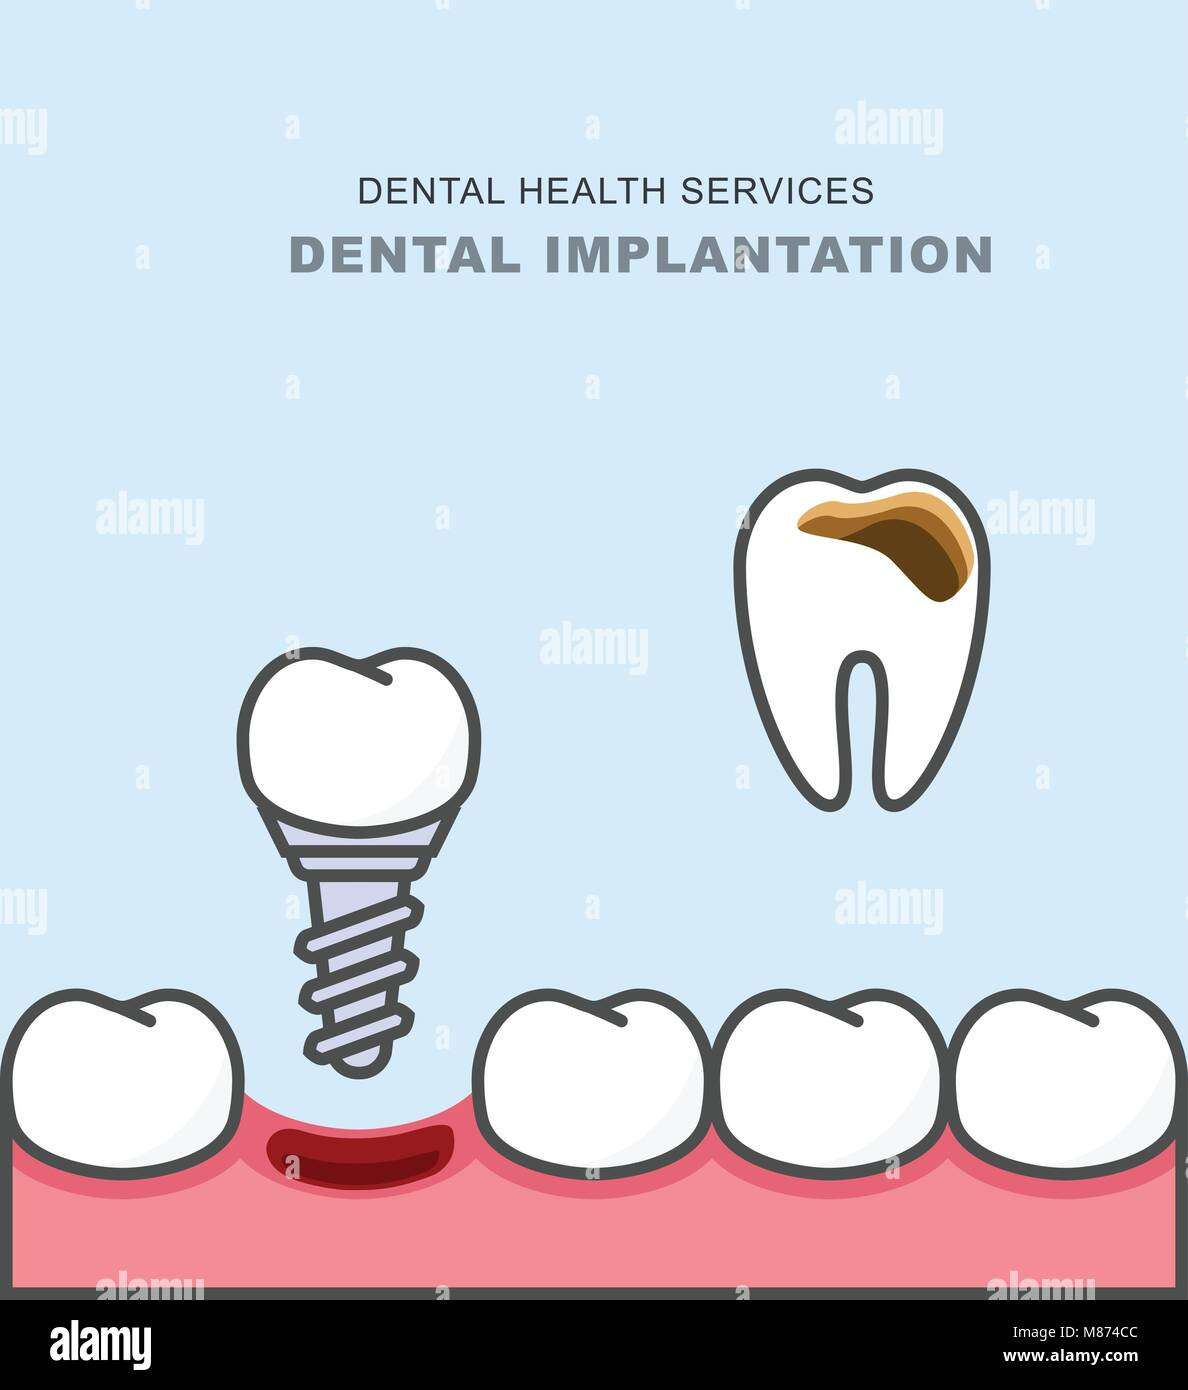 Dental implant instead of carious tooth - teeth prosthetics - Stock Image